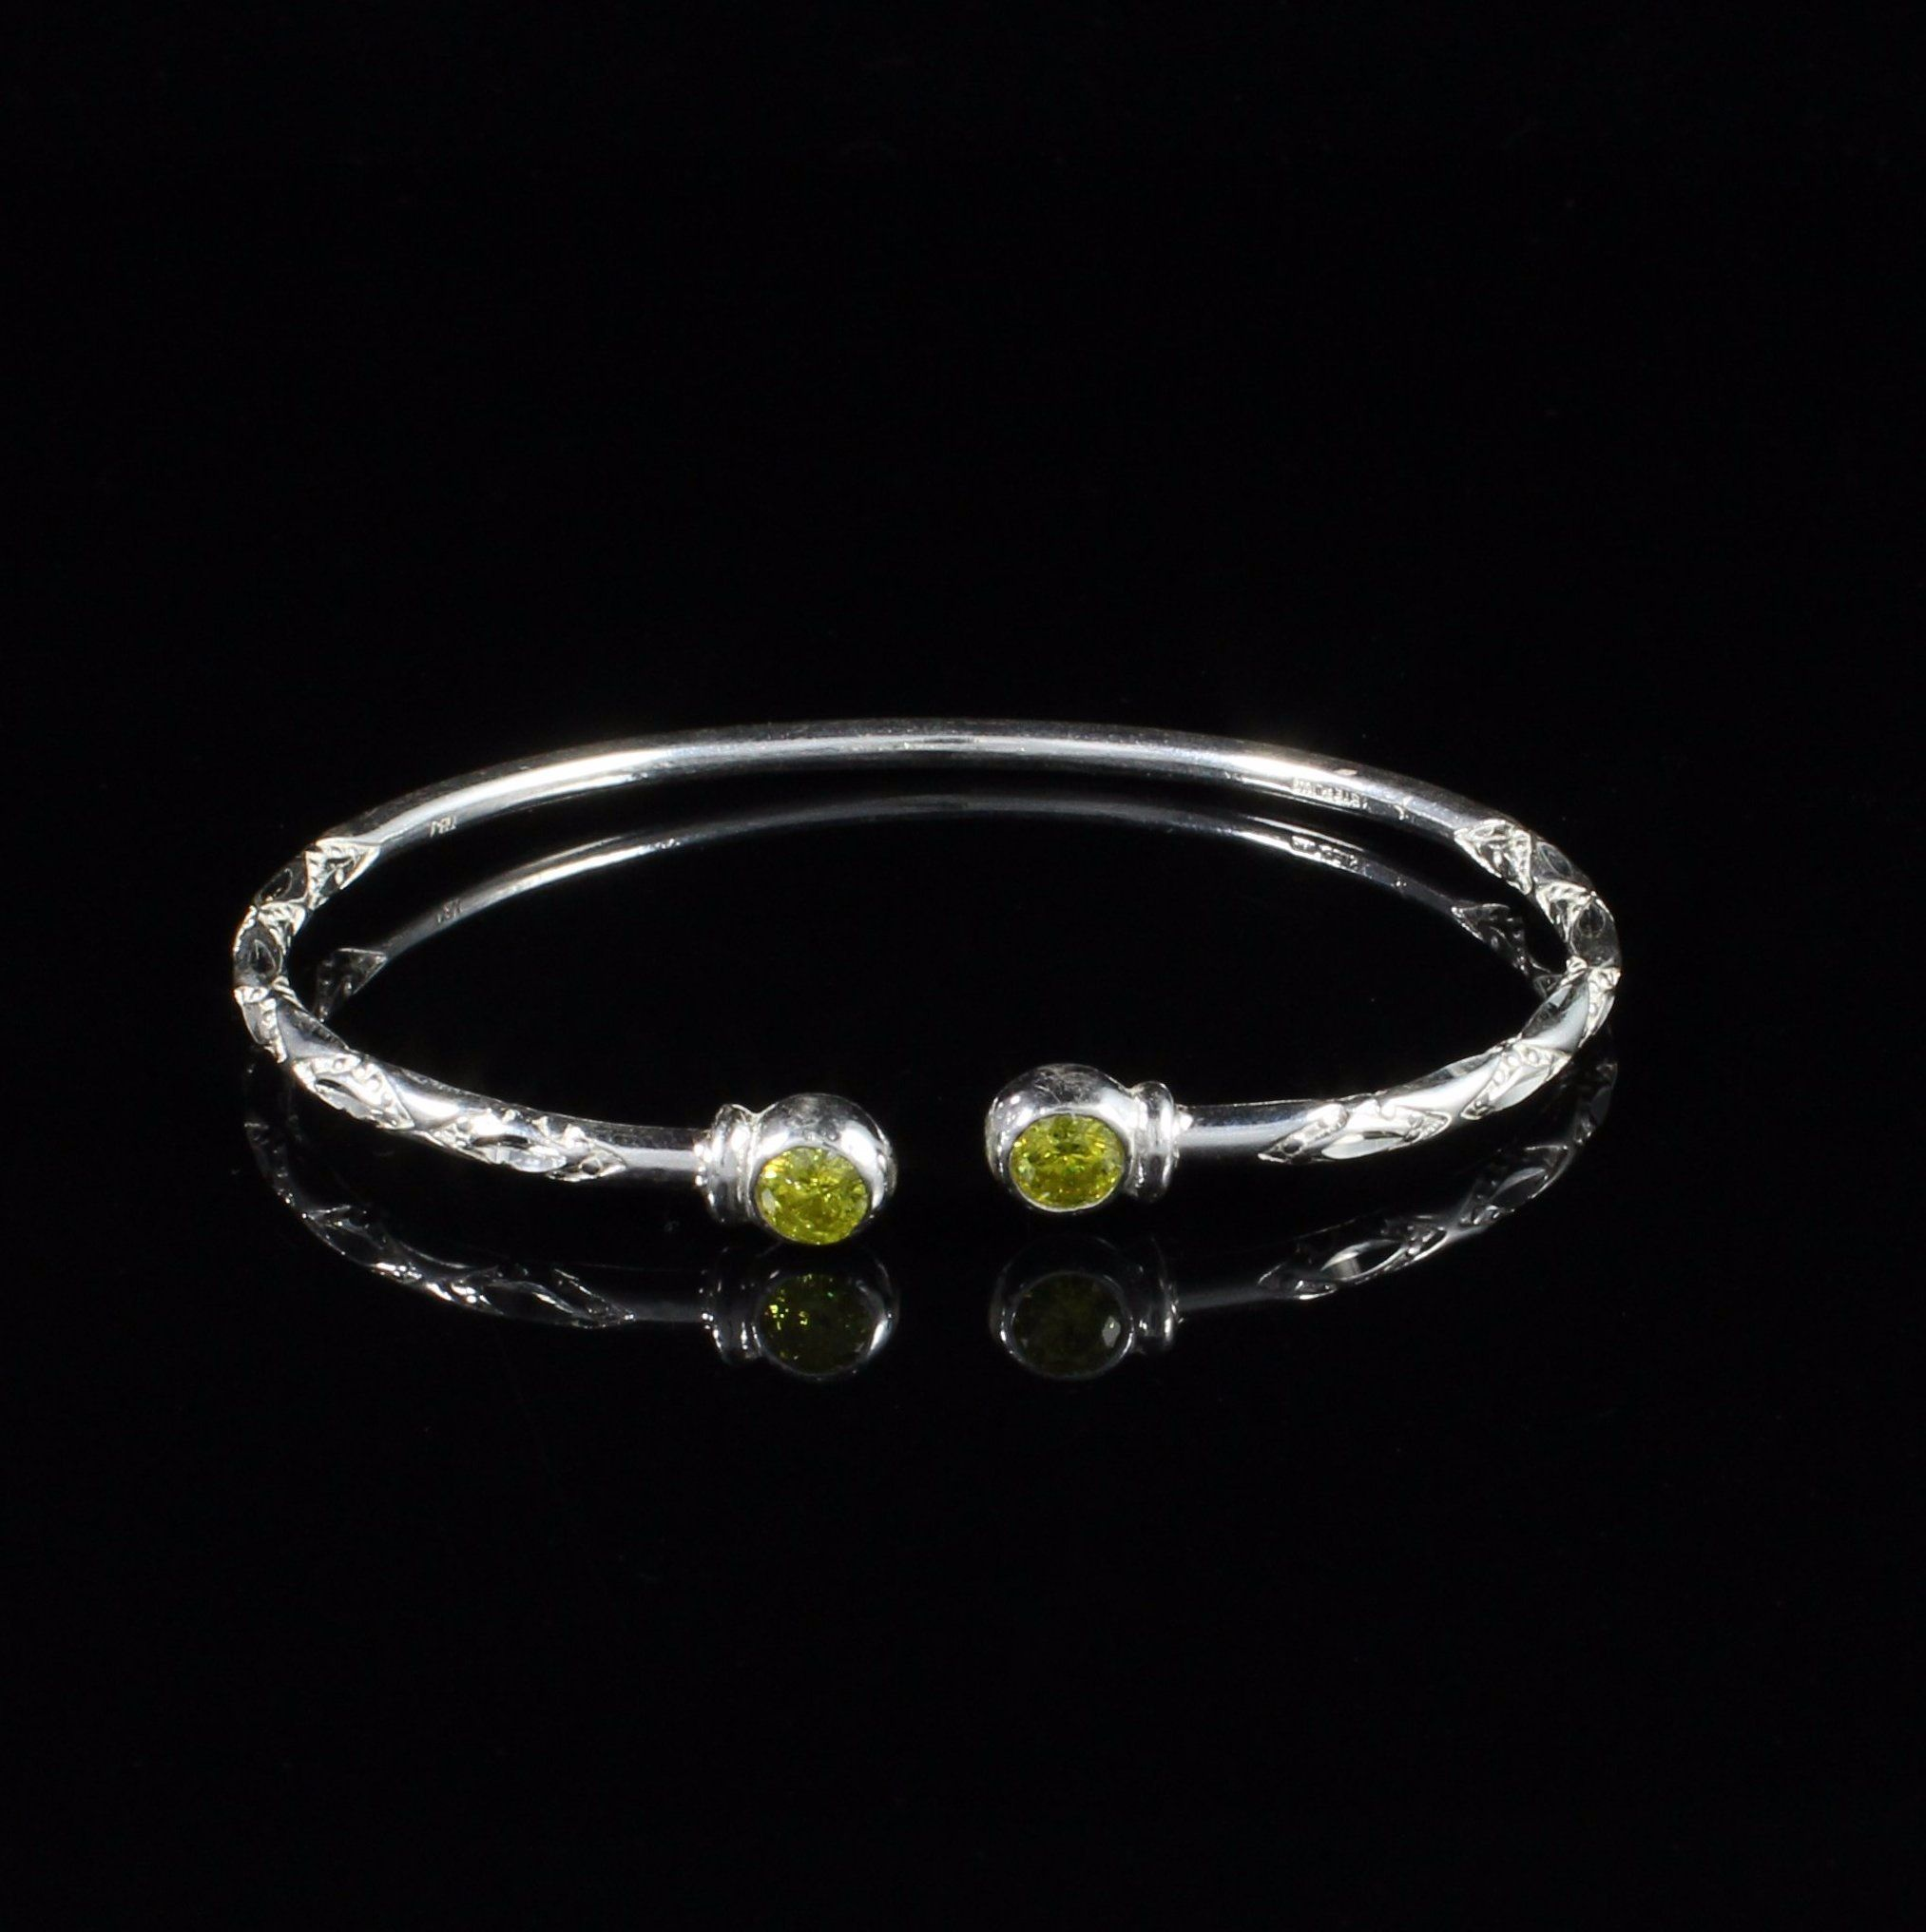 110 West Indian Bangle With Synthetic Yellow Topaz November Birthstone Handmade In 925 Sterling